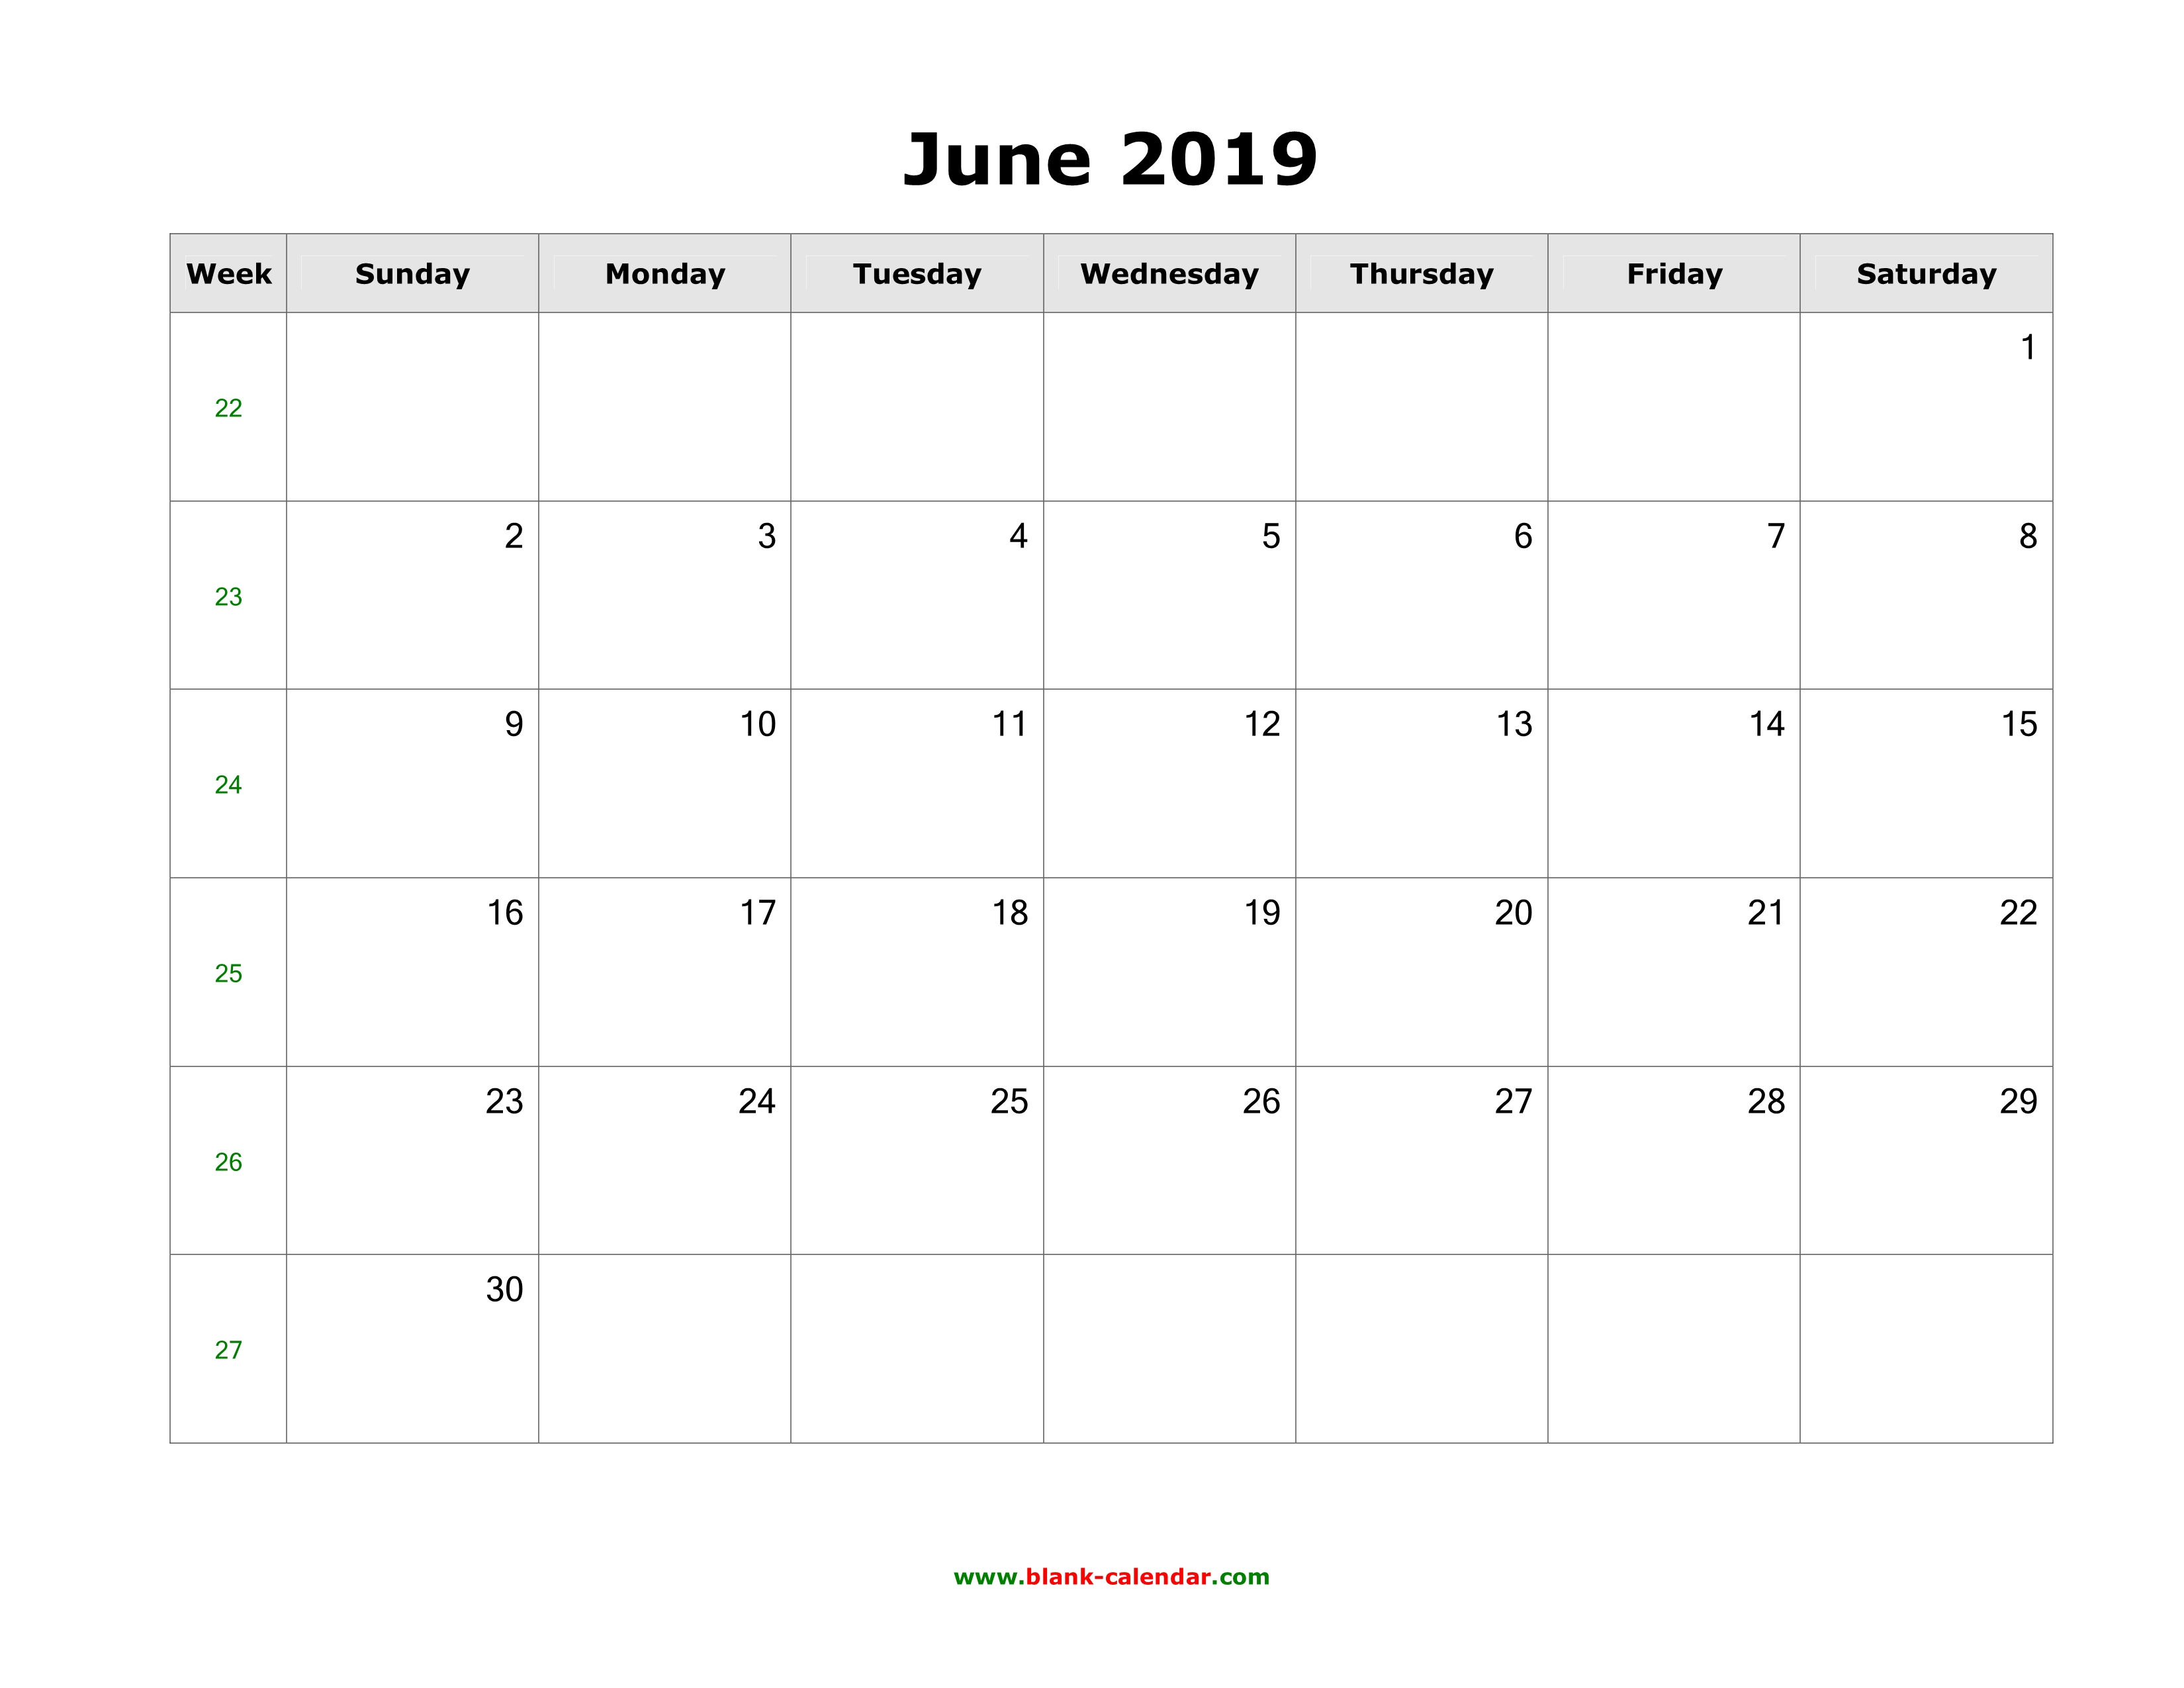 2019 June Calendar.June 2019 Blank Calendar Free Download Calendar Templates